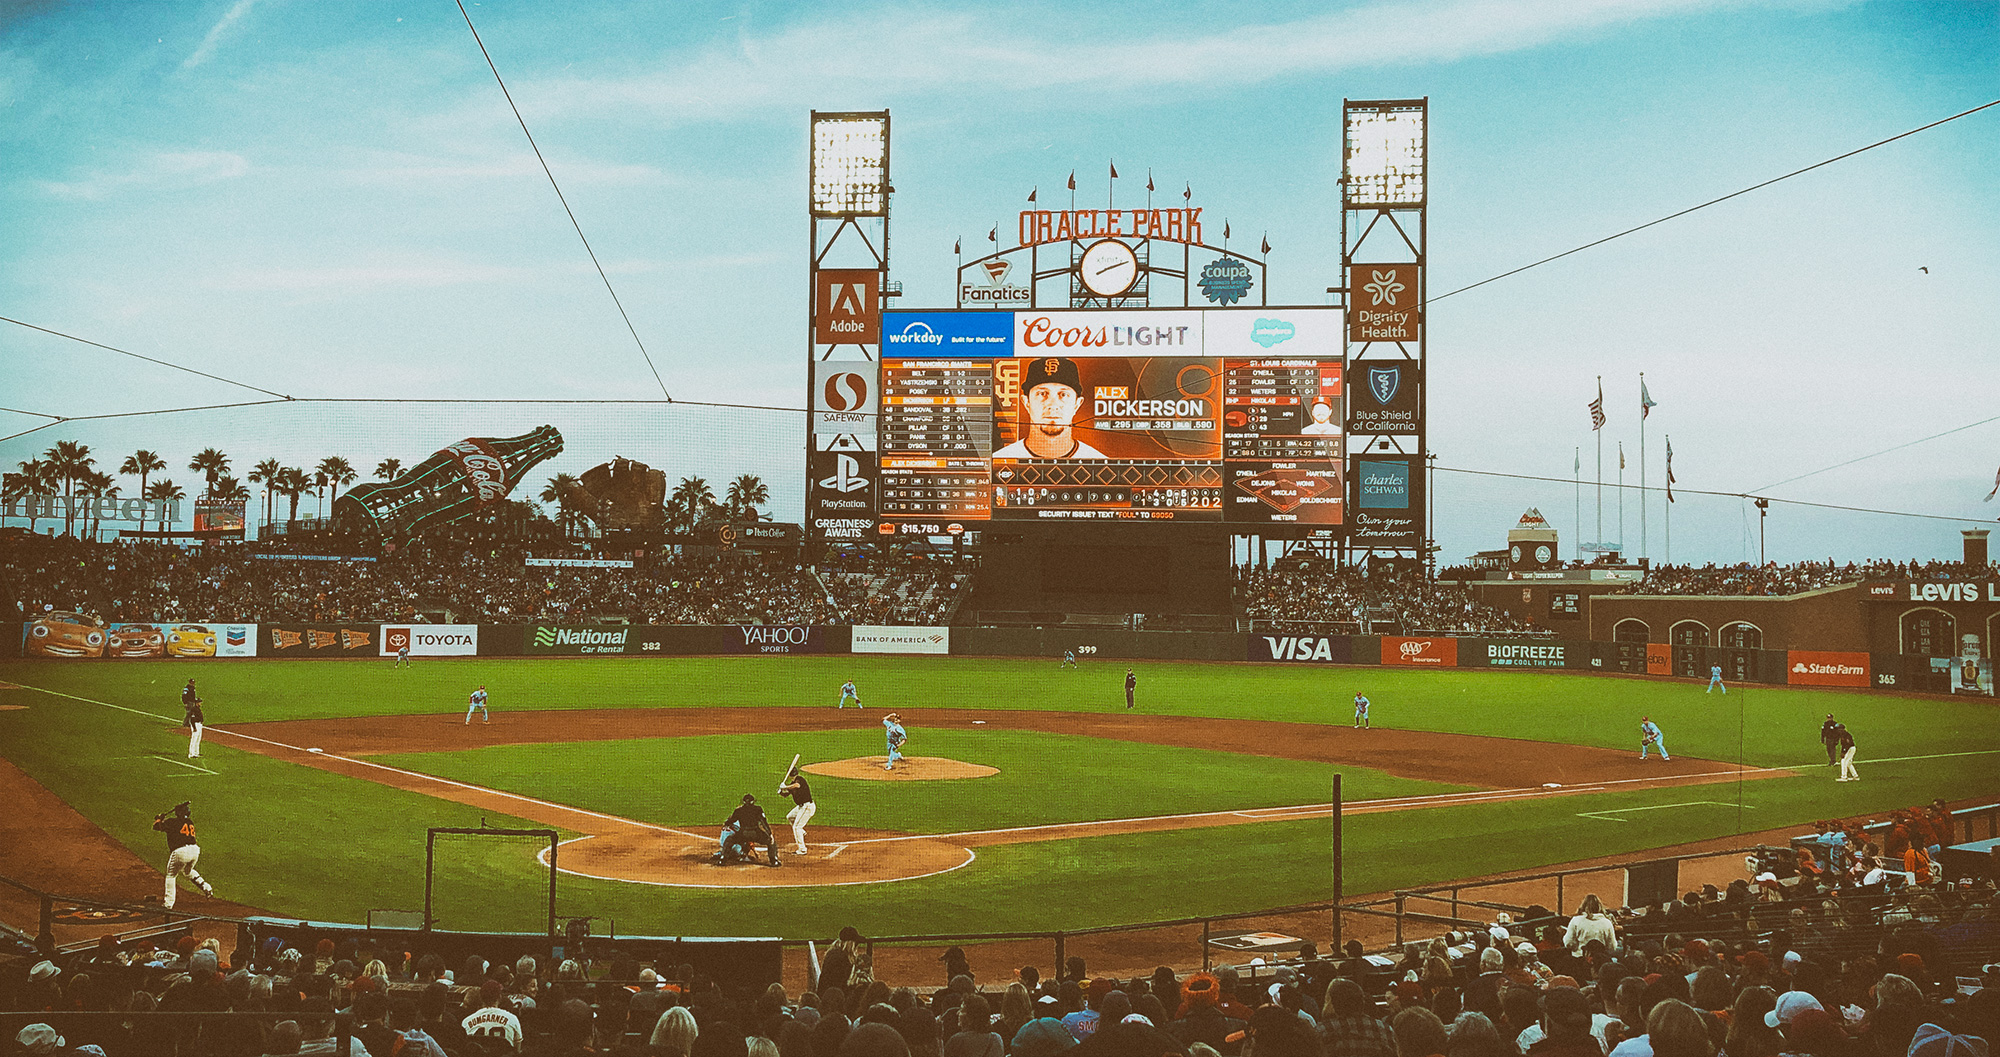 July 6th, 2019 Baseball game between the St. Louis Cardinals and San Francisco Giants at Oracle Park